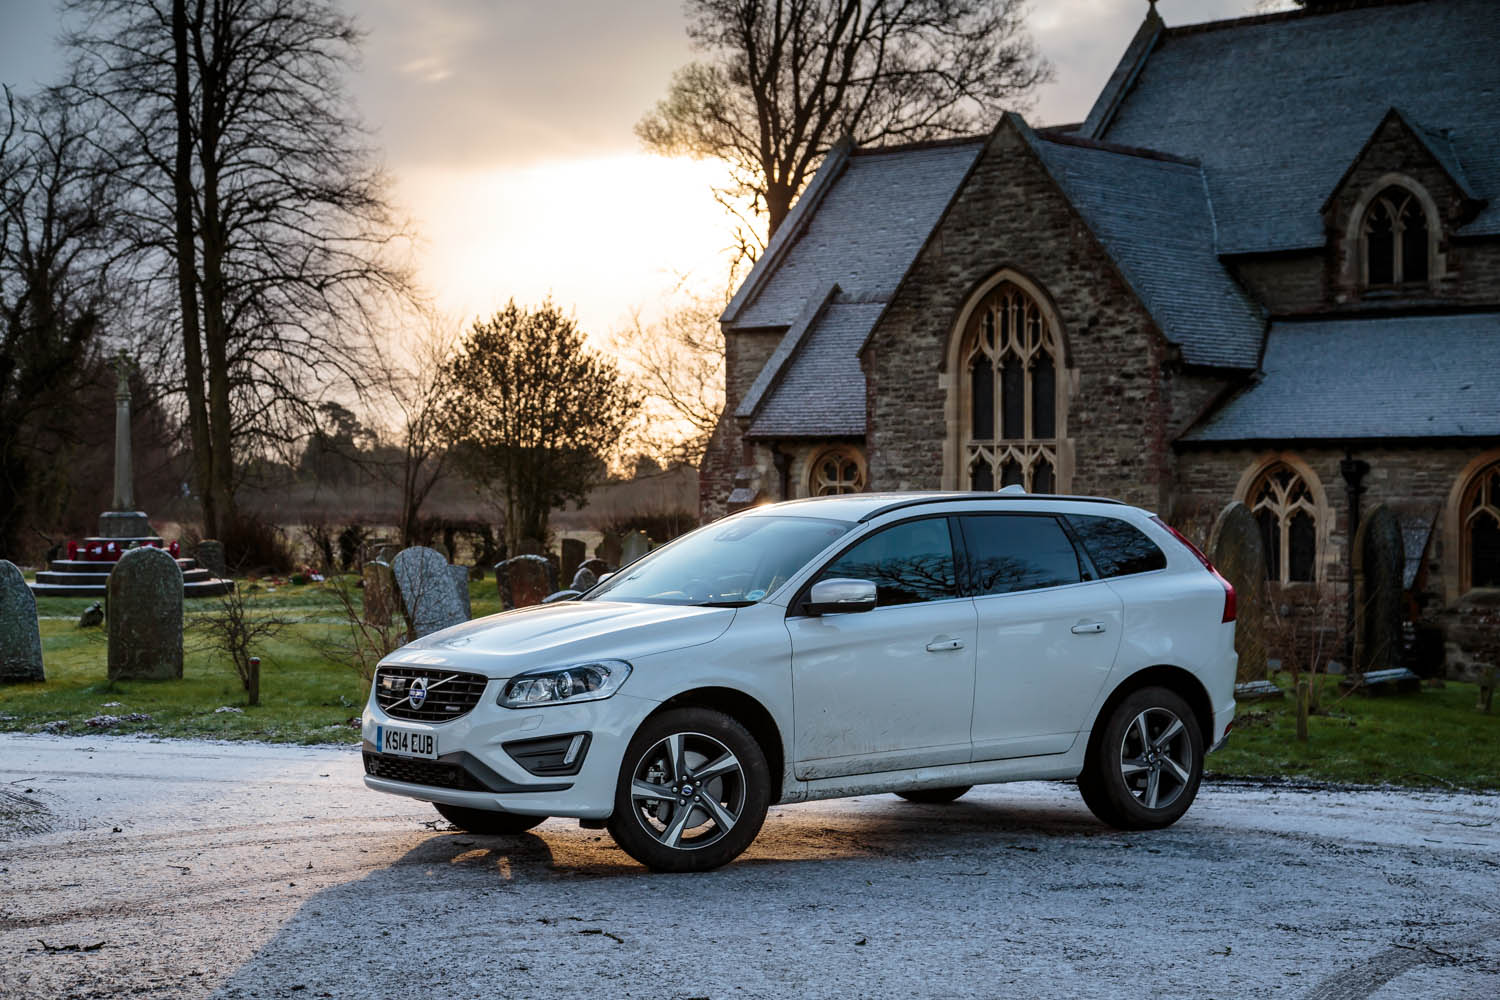 Volvo XC60 D4 R-Design Review - You Would Be a Fool Not to Buy One